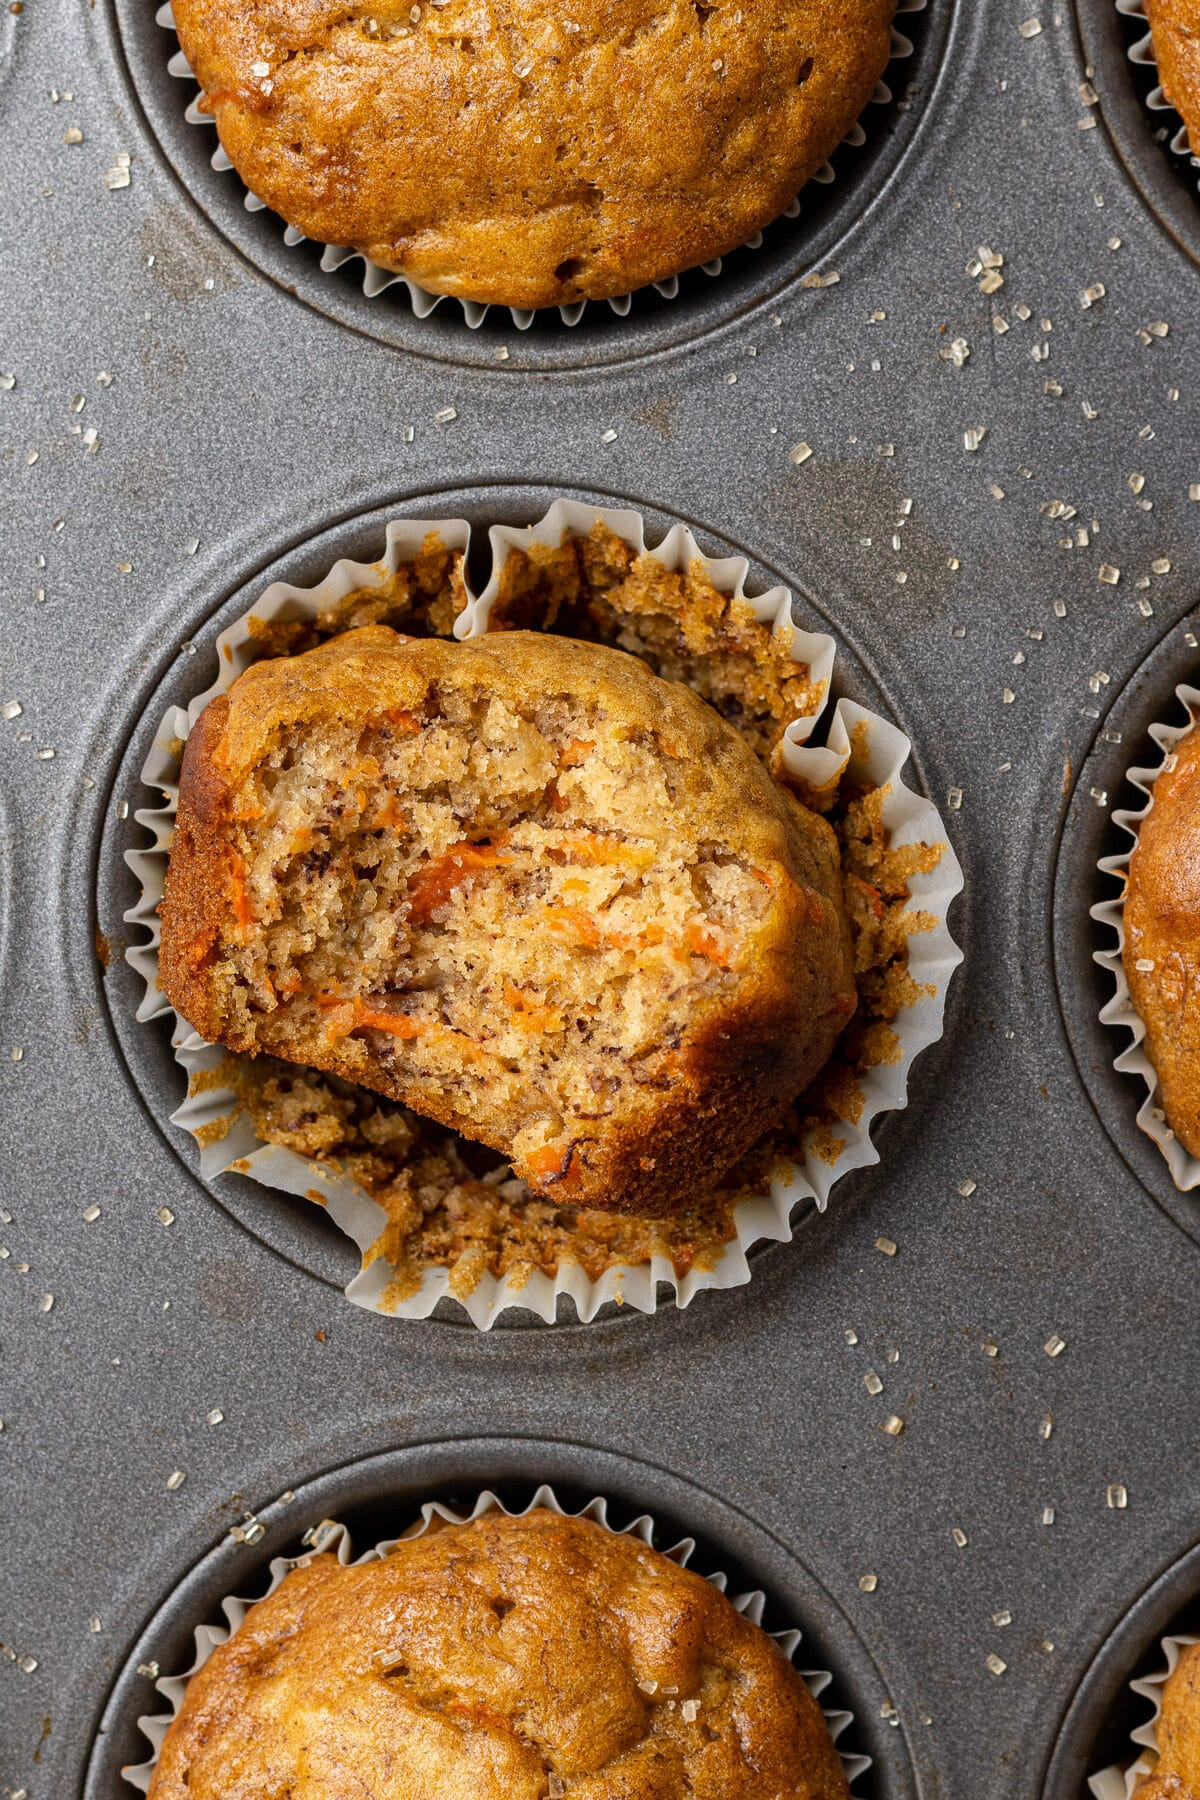 a banana carrot muffin with a bite out of it in a muffin tray